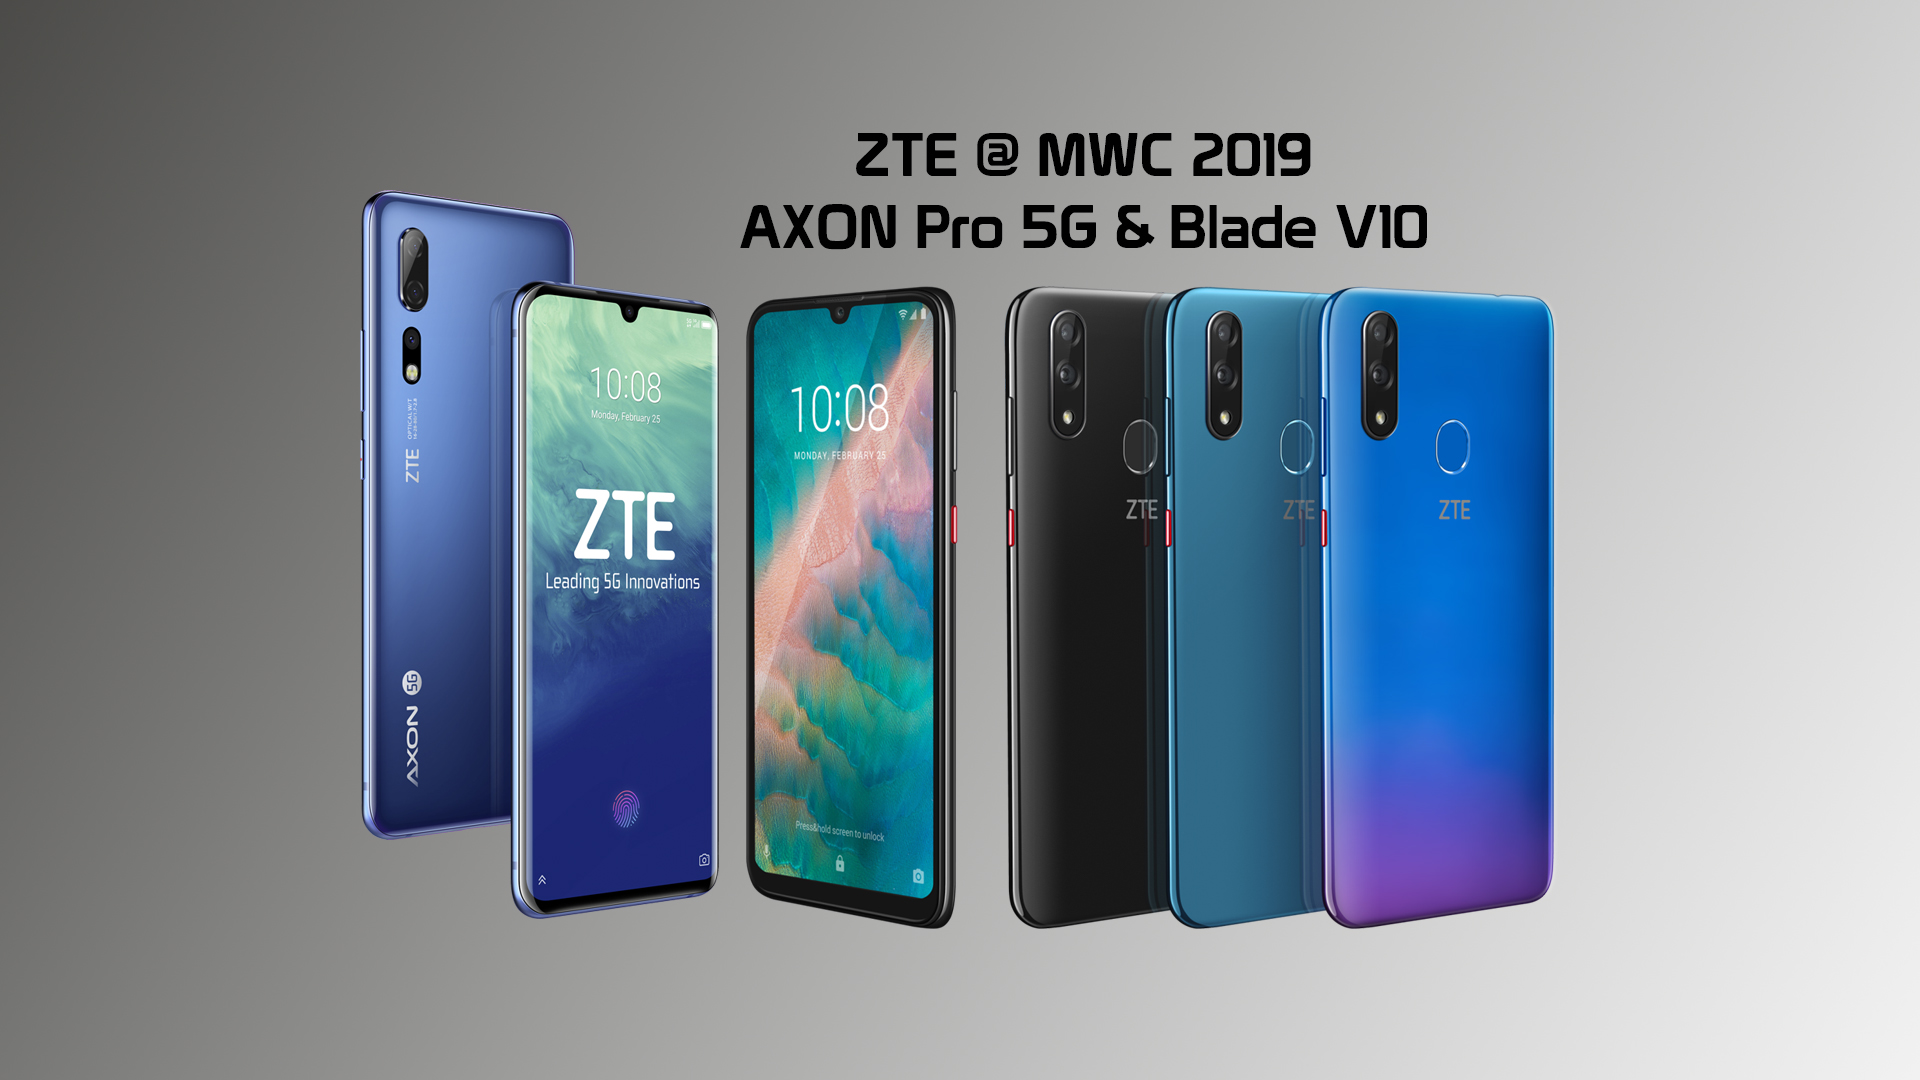 mwc 2019 zte pr sentiert neue smartphones gamerschoice von gamern f r gamer. Black Bedroom Furniture Sets. Home Design Ideas